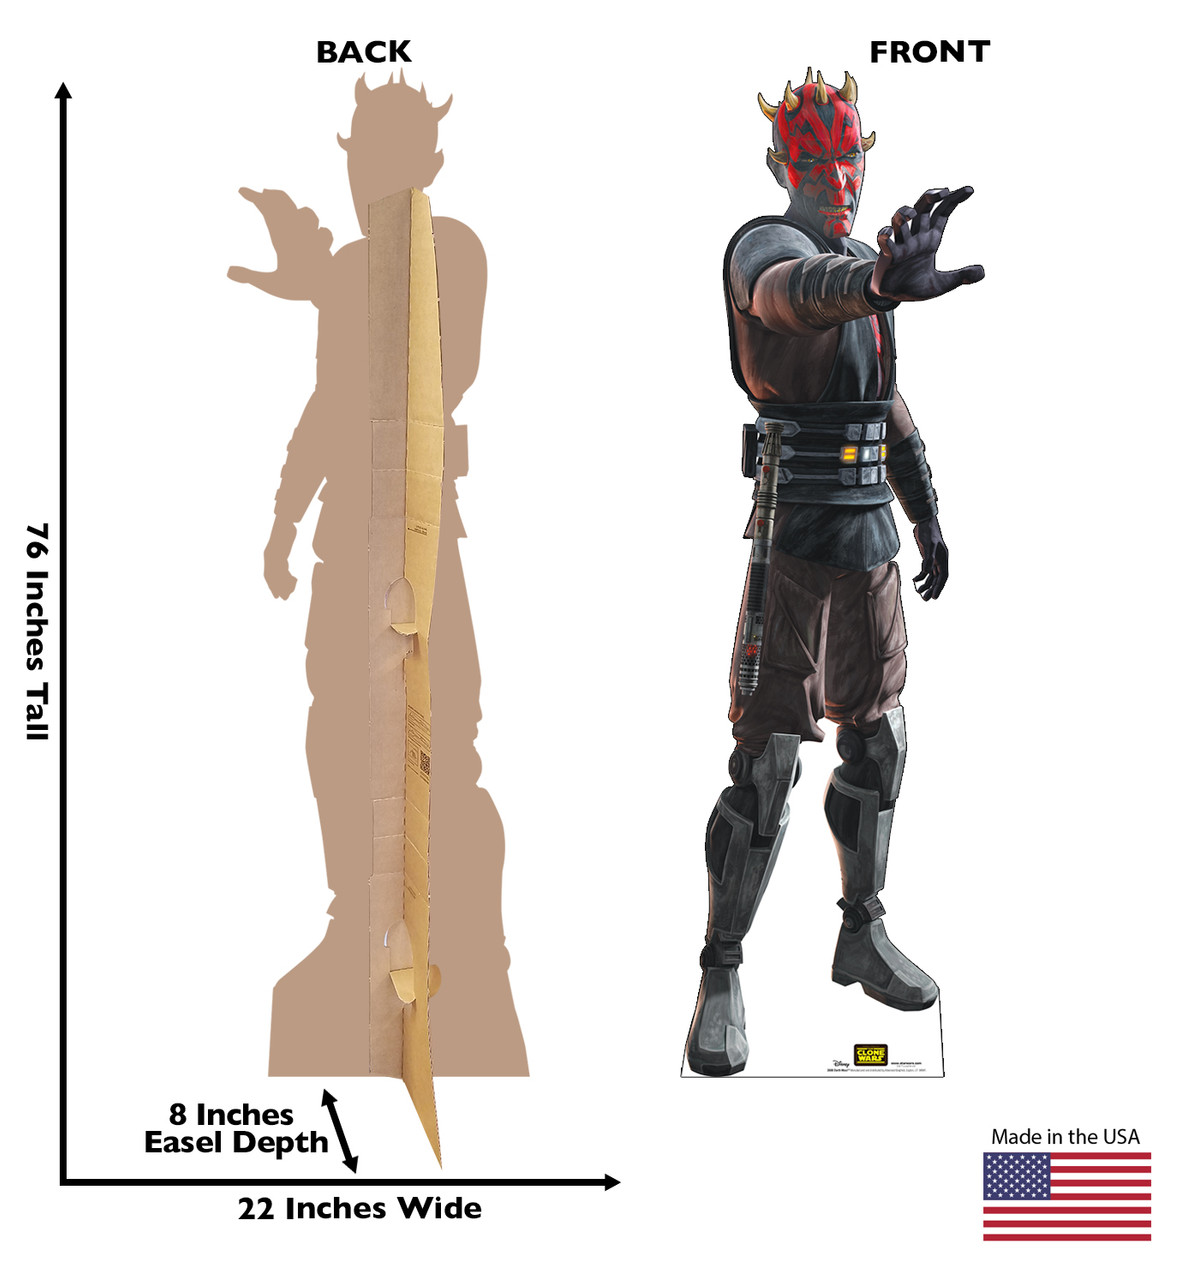 Life-size cardboard standee of the character Darth Maul from Clone Wars Season 7 with front and back dimensions.